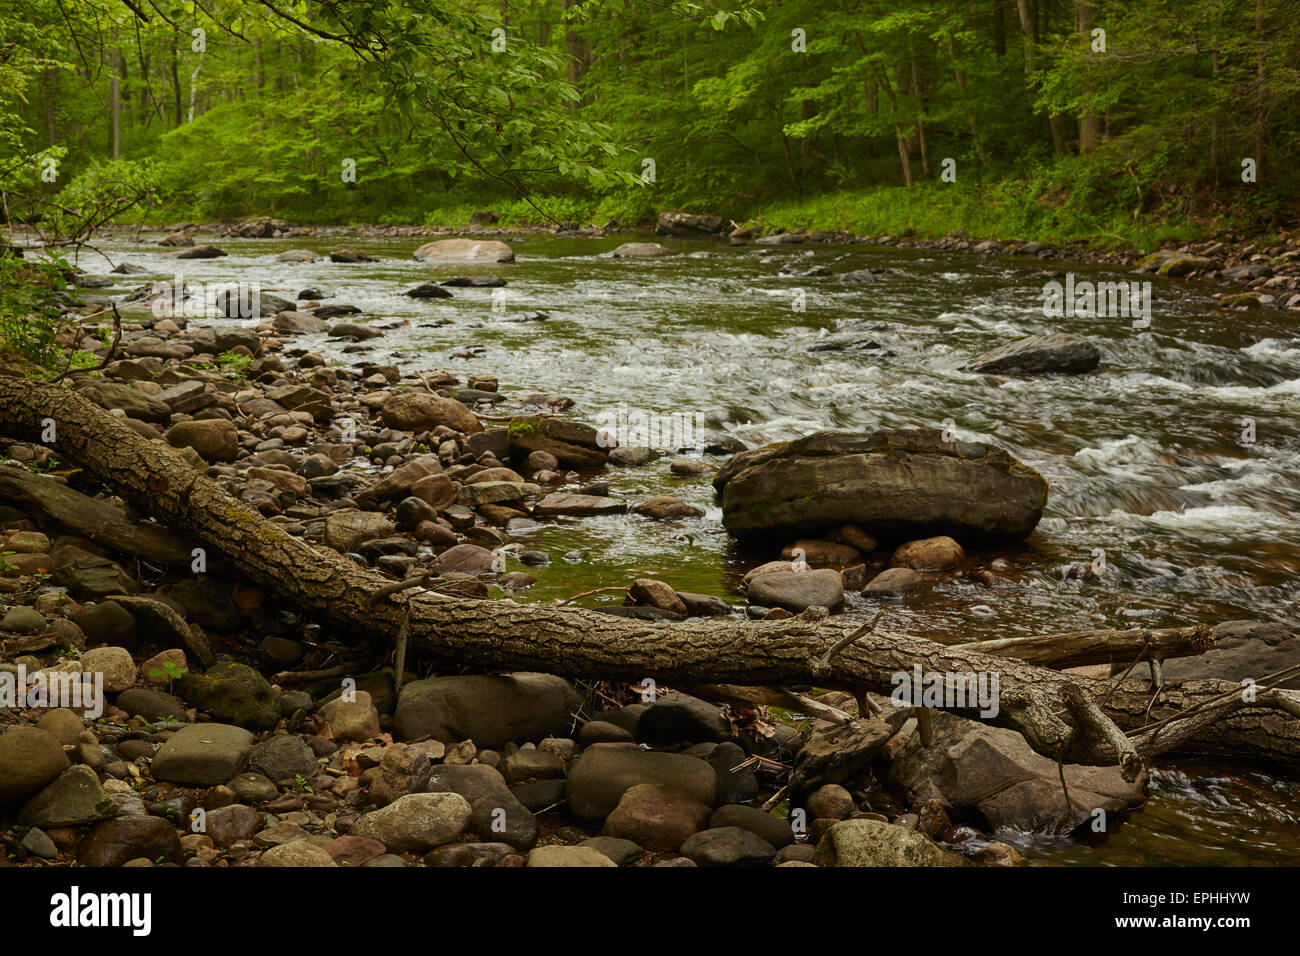 New jersey sussex county layton - Flat Brook At Layton Sussex County New Jersey Usa